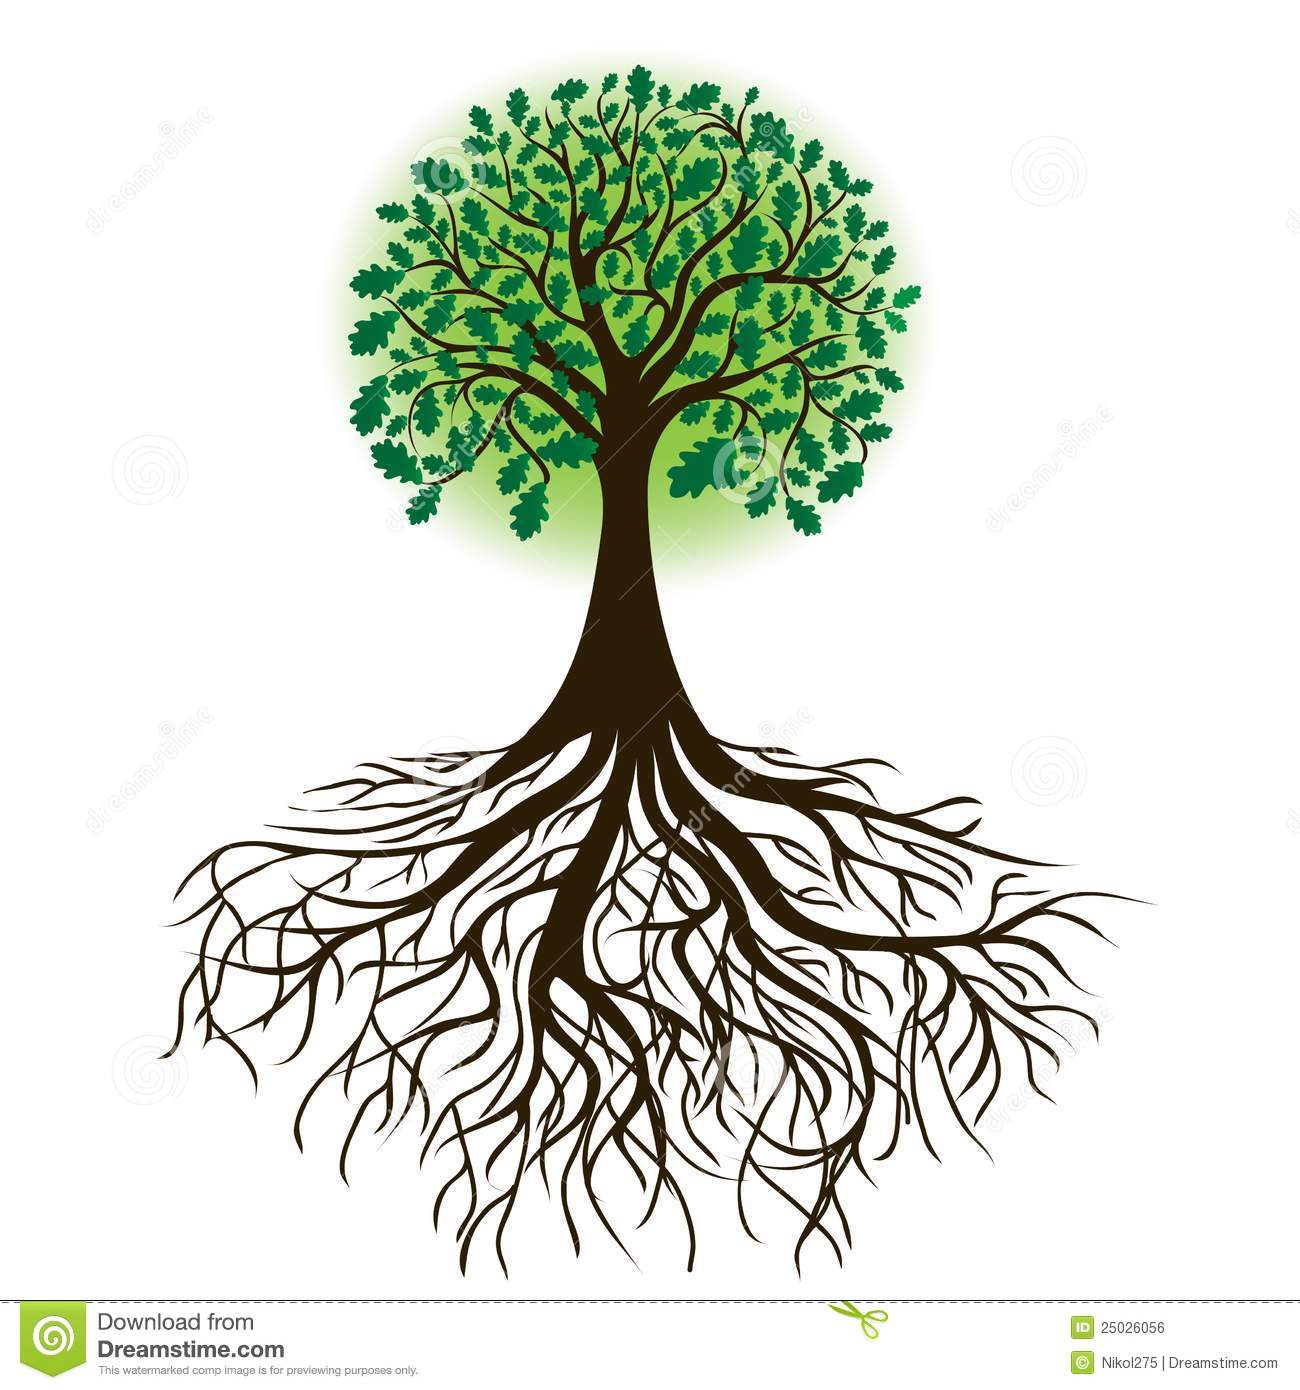 Clip Art Tree With Roots Clipart oak tree with roots clipart kid and dense foliage vector royalty free stock image